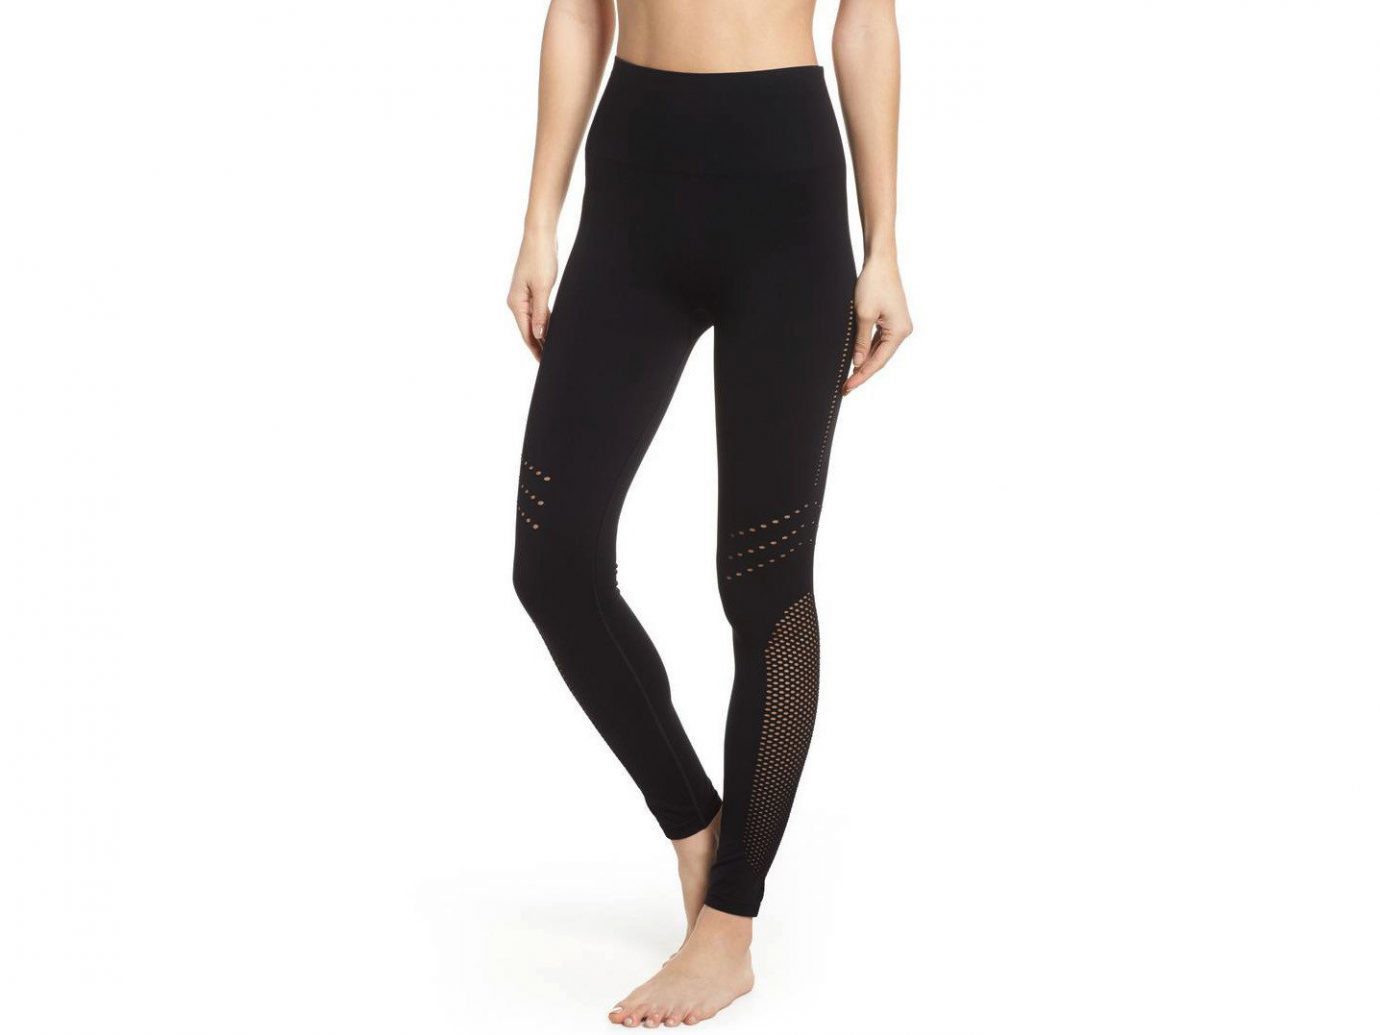 Style + Design Travel Shop clothing woman leggings tights waist human leg trousers active undergarment joint abdomen active pants thigh posing female trouser